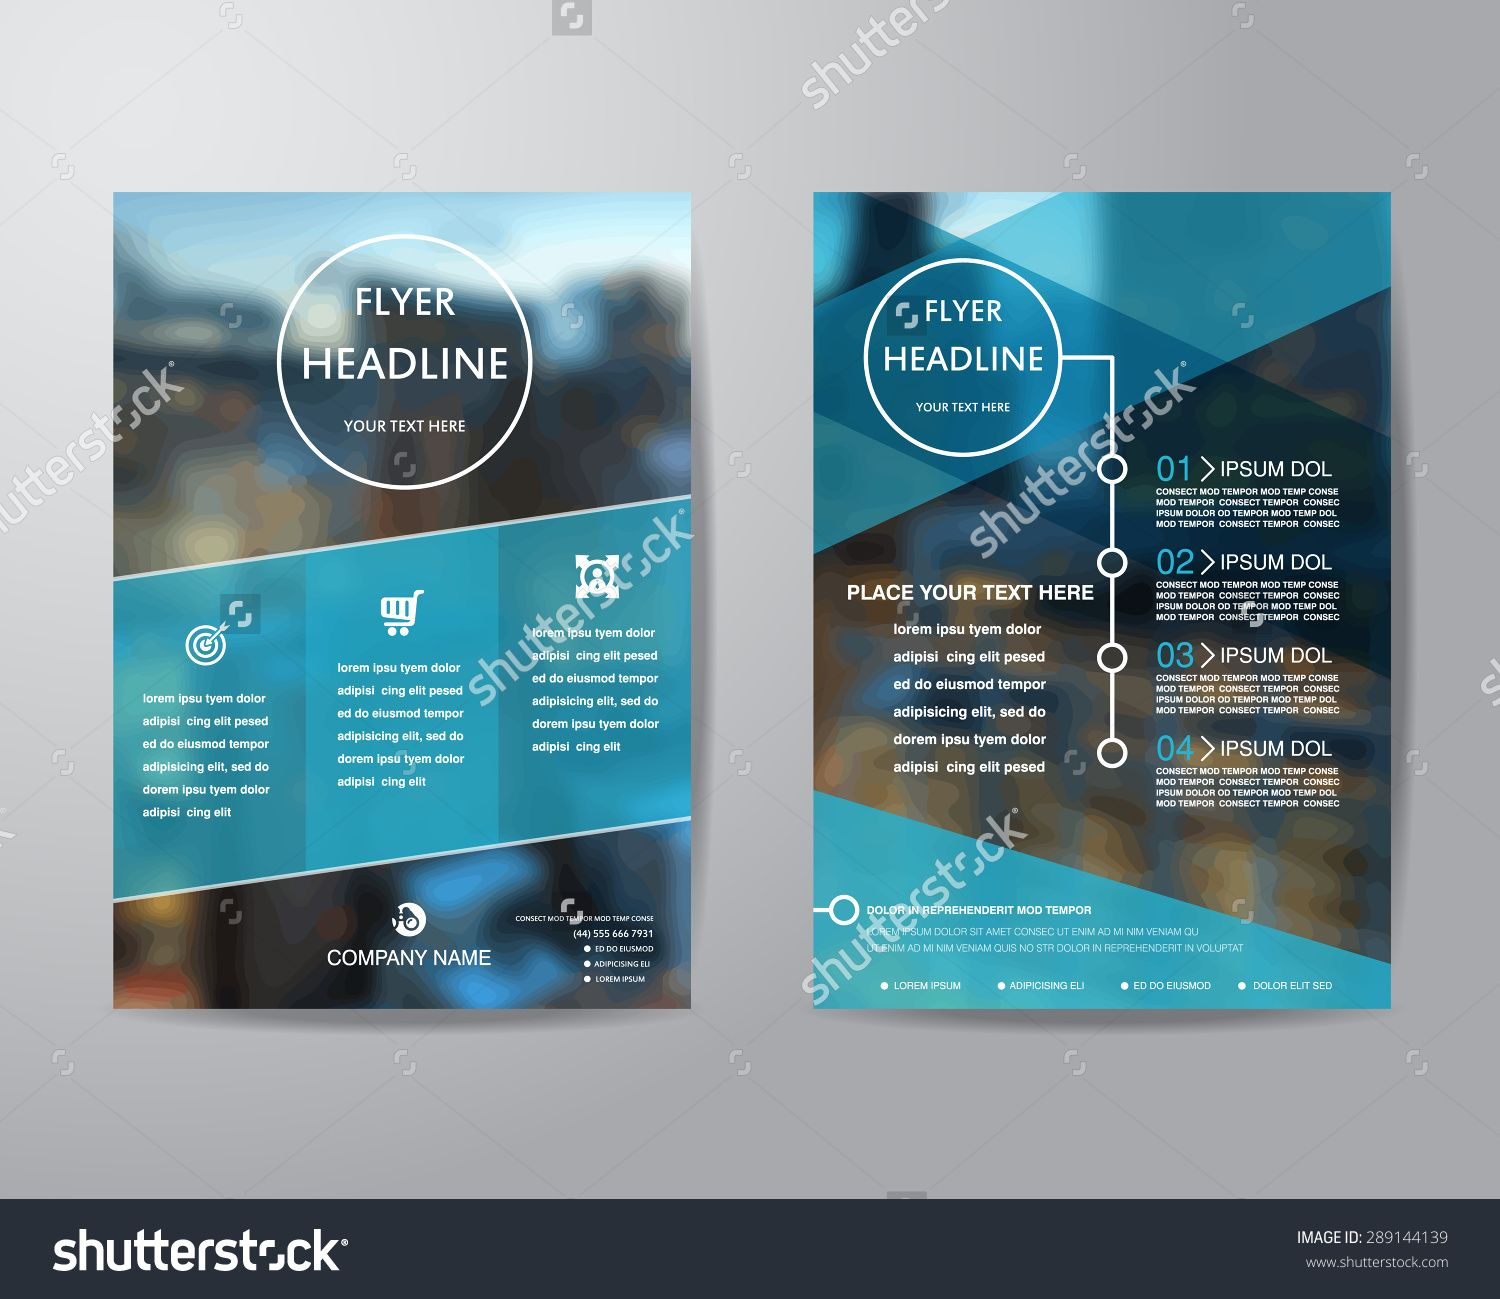 Business Brochure Flyer Design Layout Template In A Size With - Brochure flyer templates